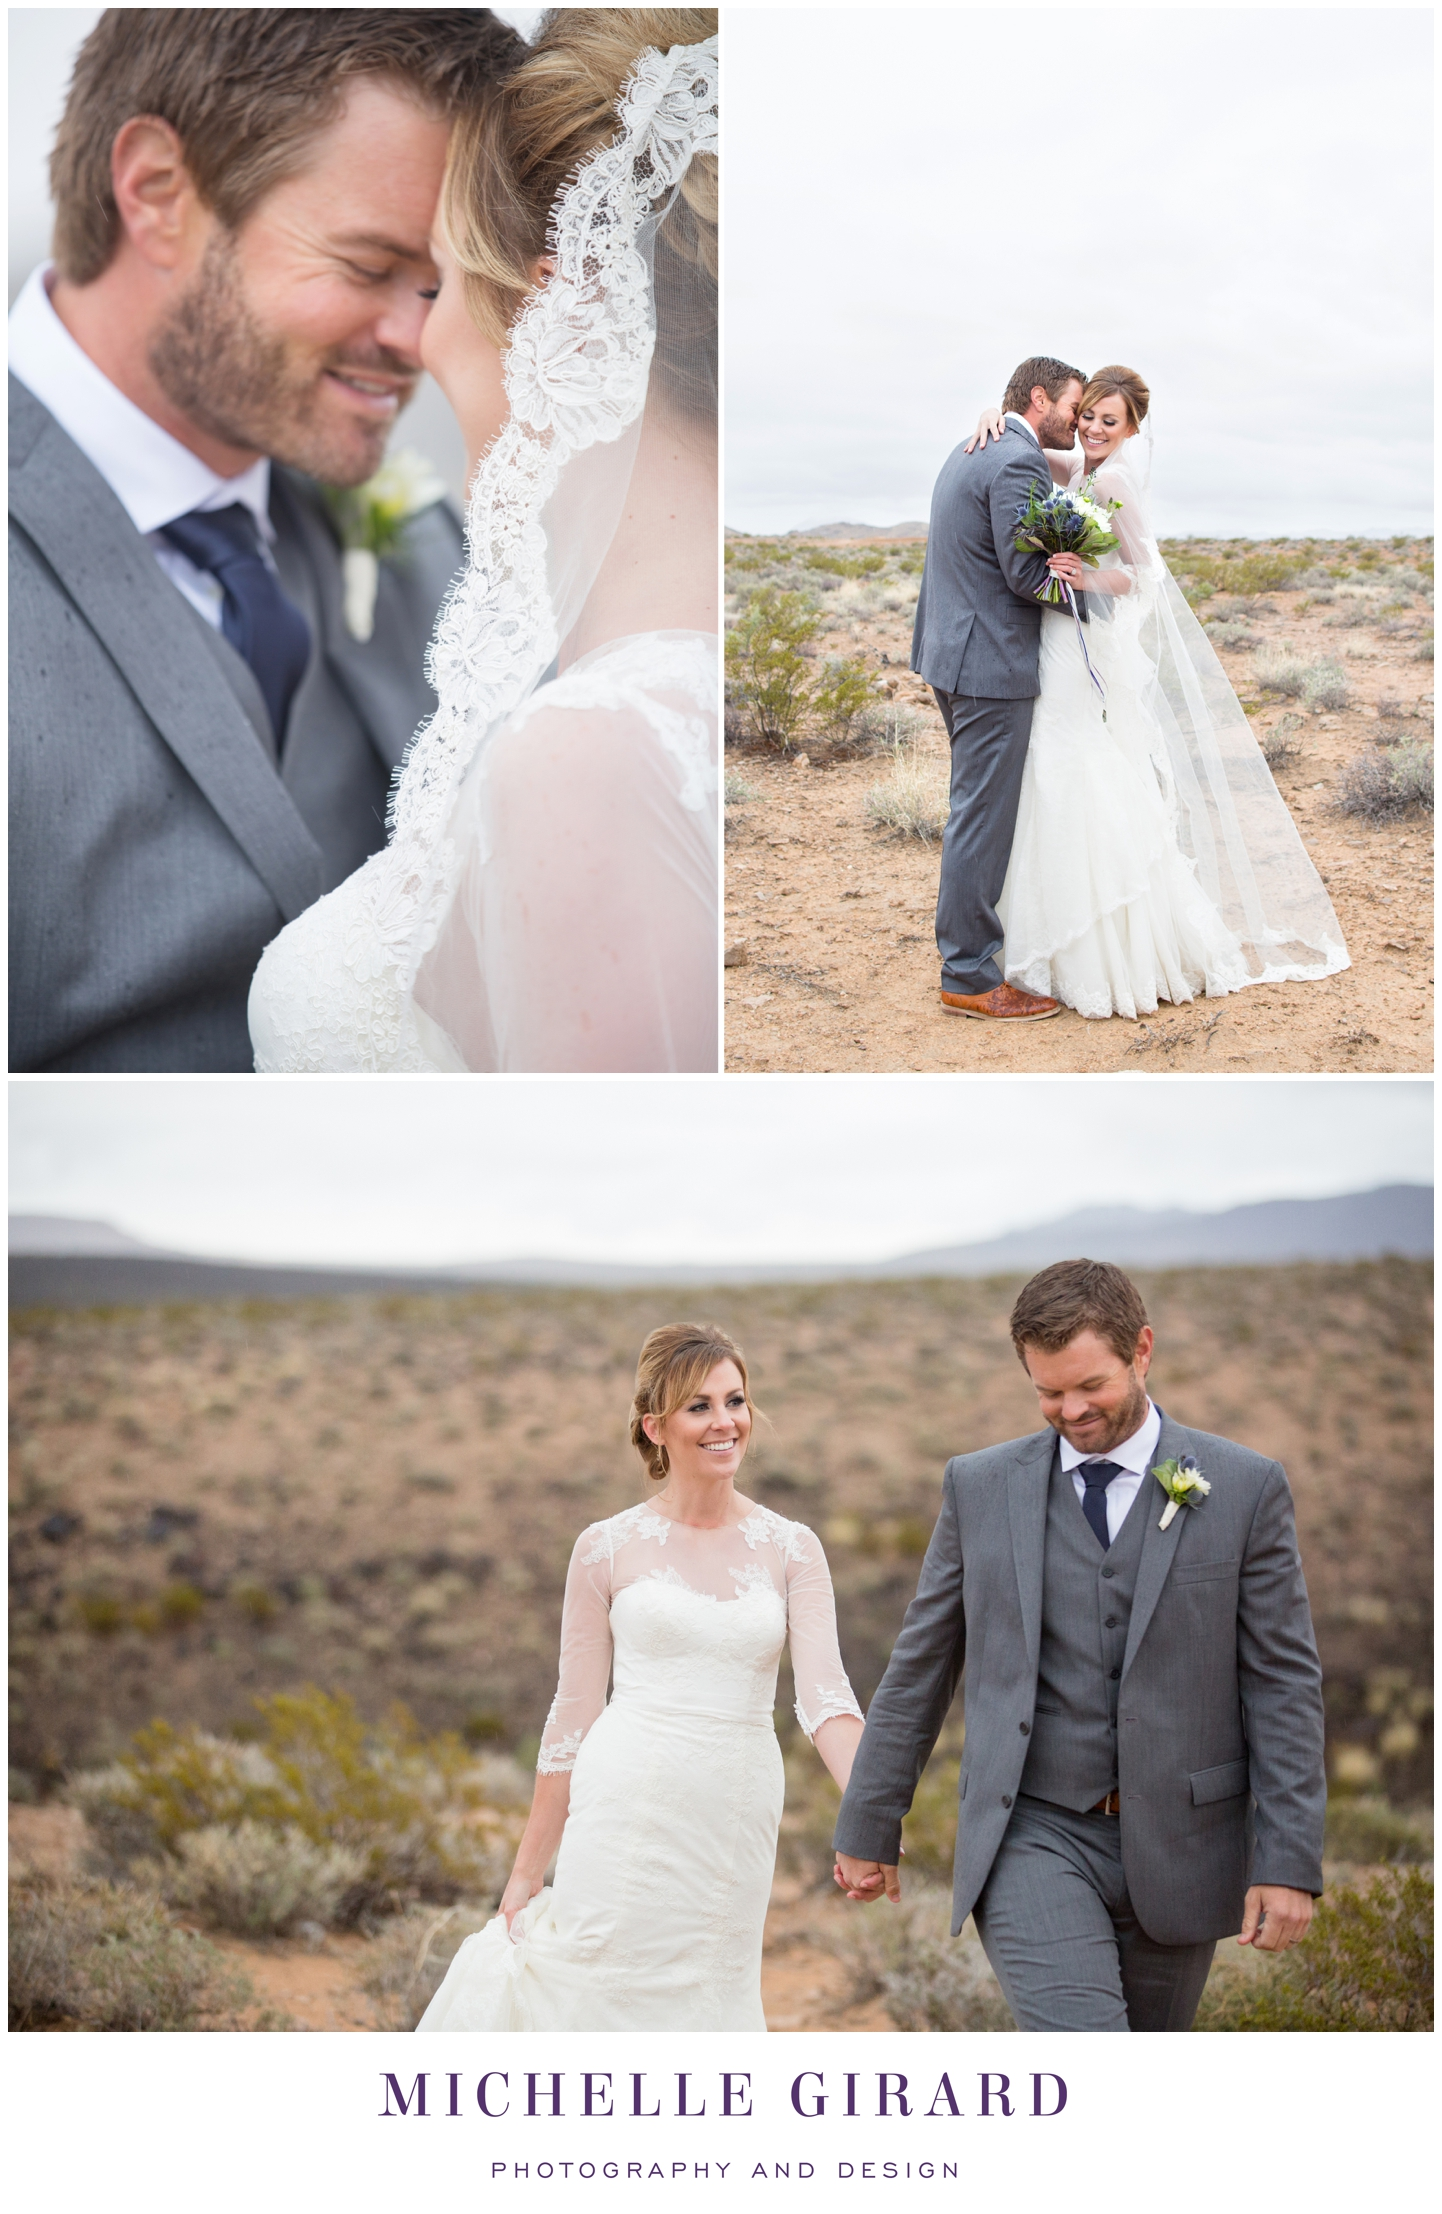 nevada-desert-lace-veil-michelle-girard-wedding-photography15.jpg